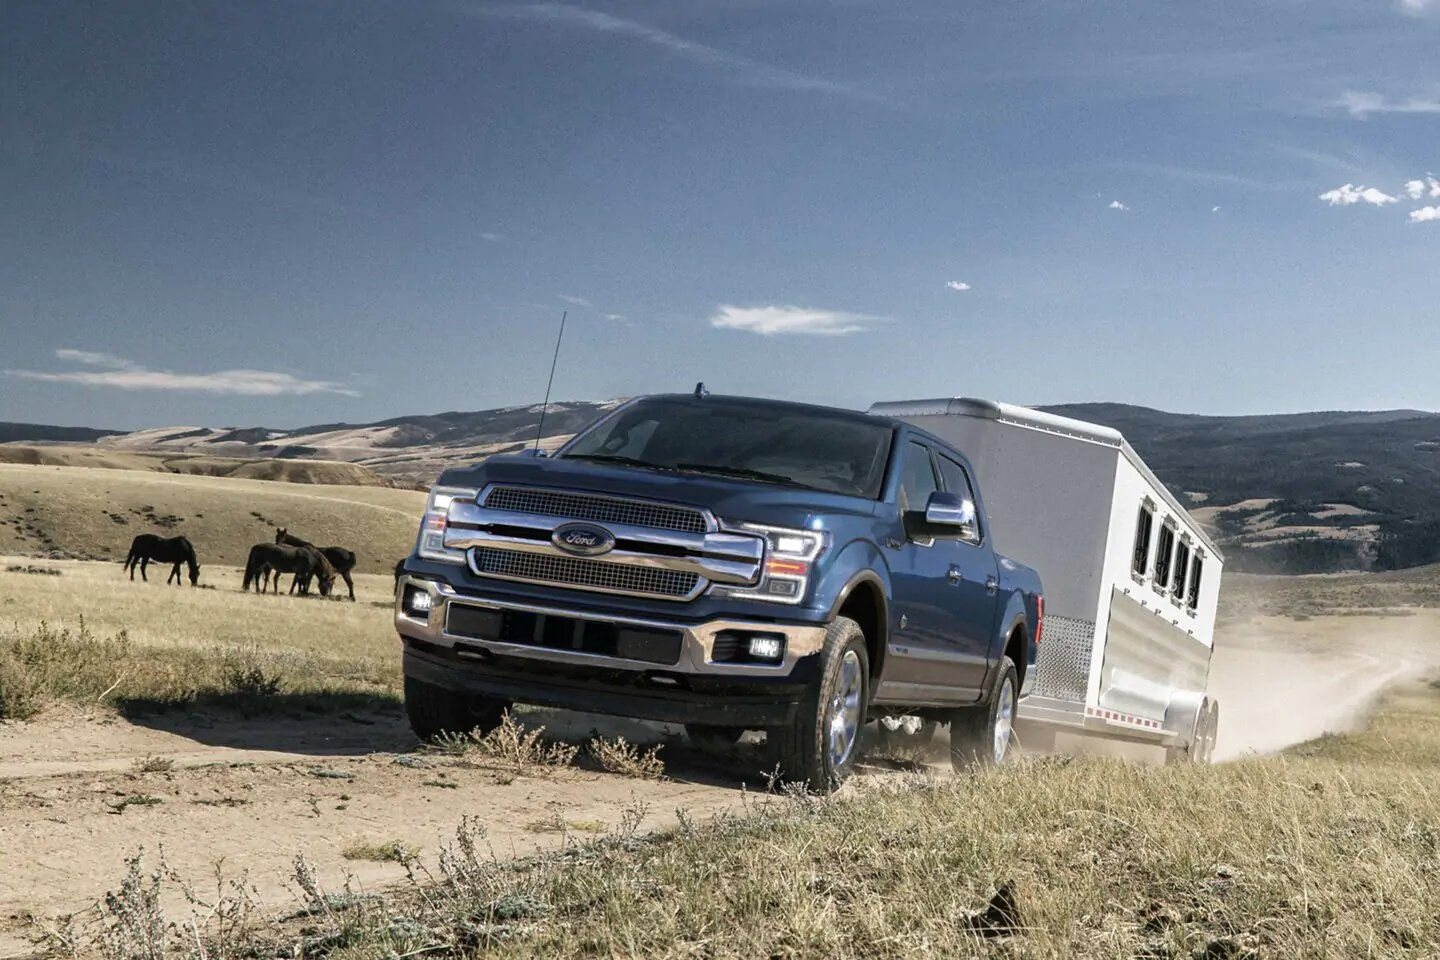 New 2020 F-150 Towing Features